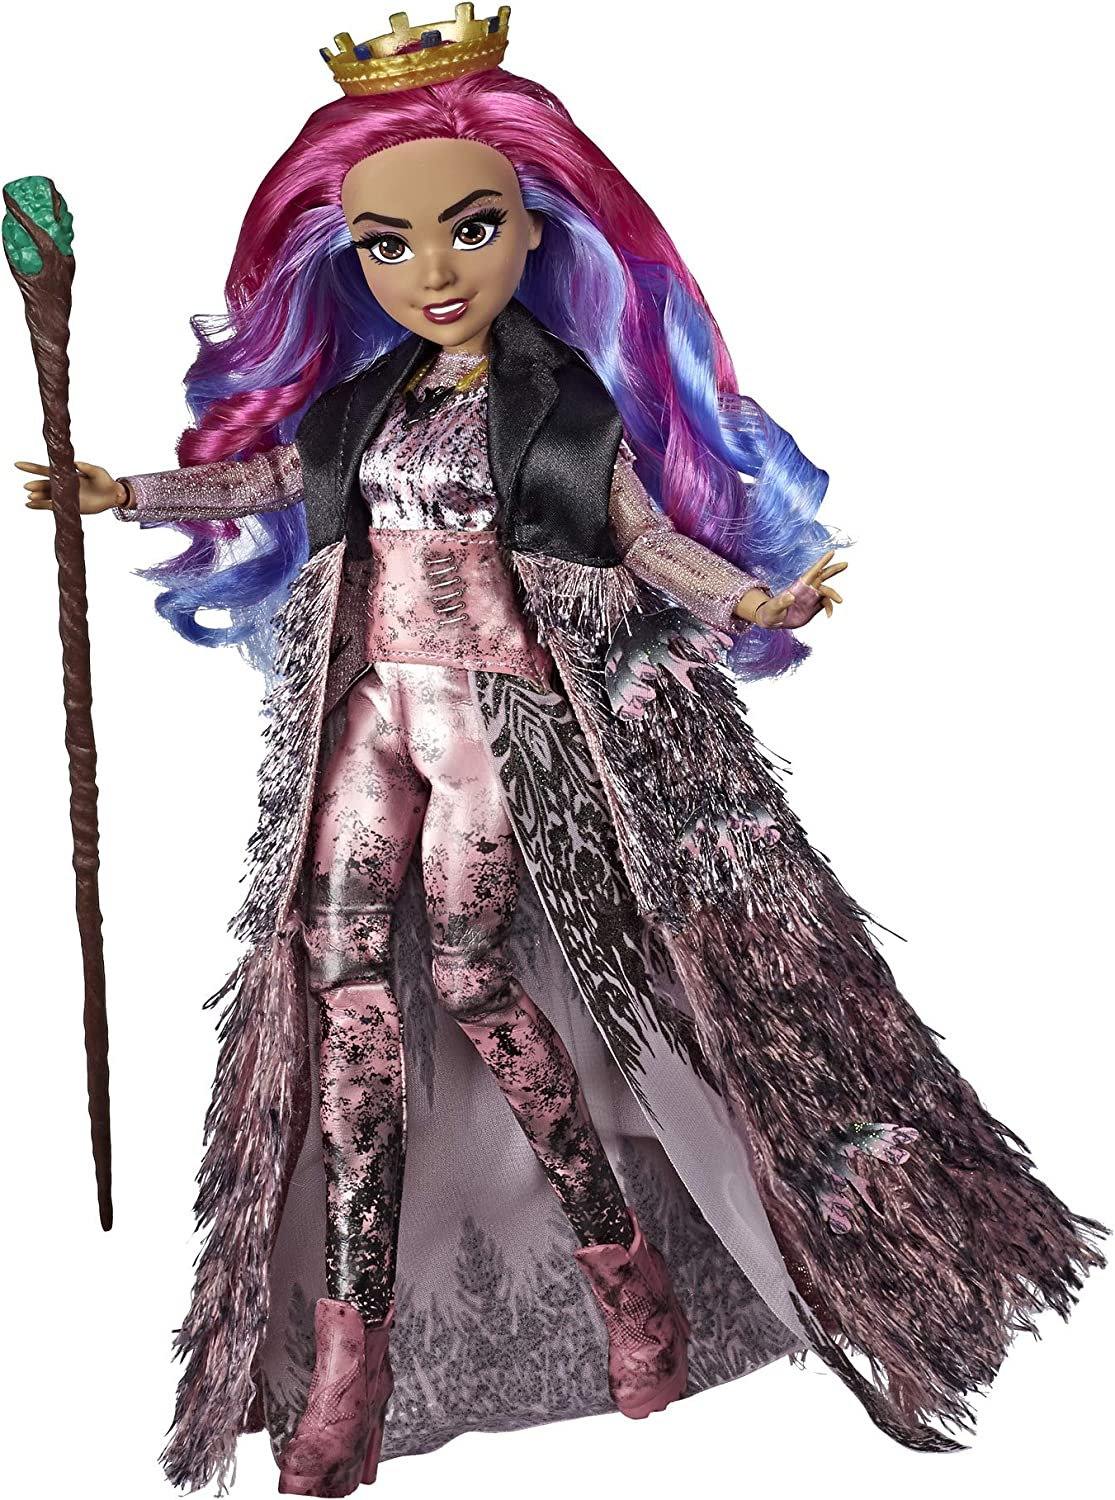 Queen of Mean doll